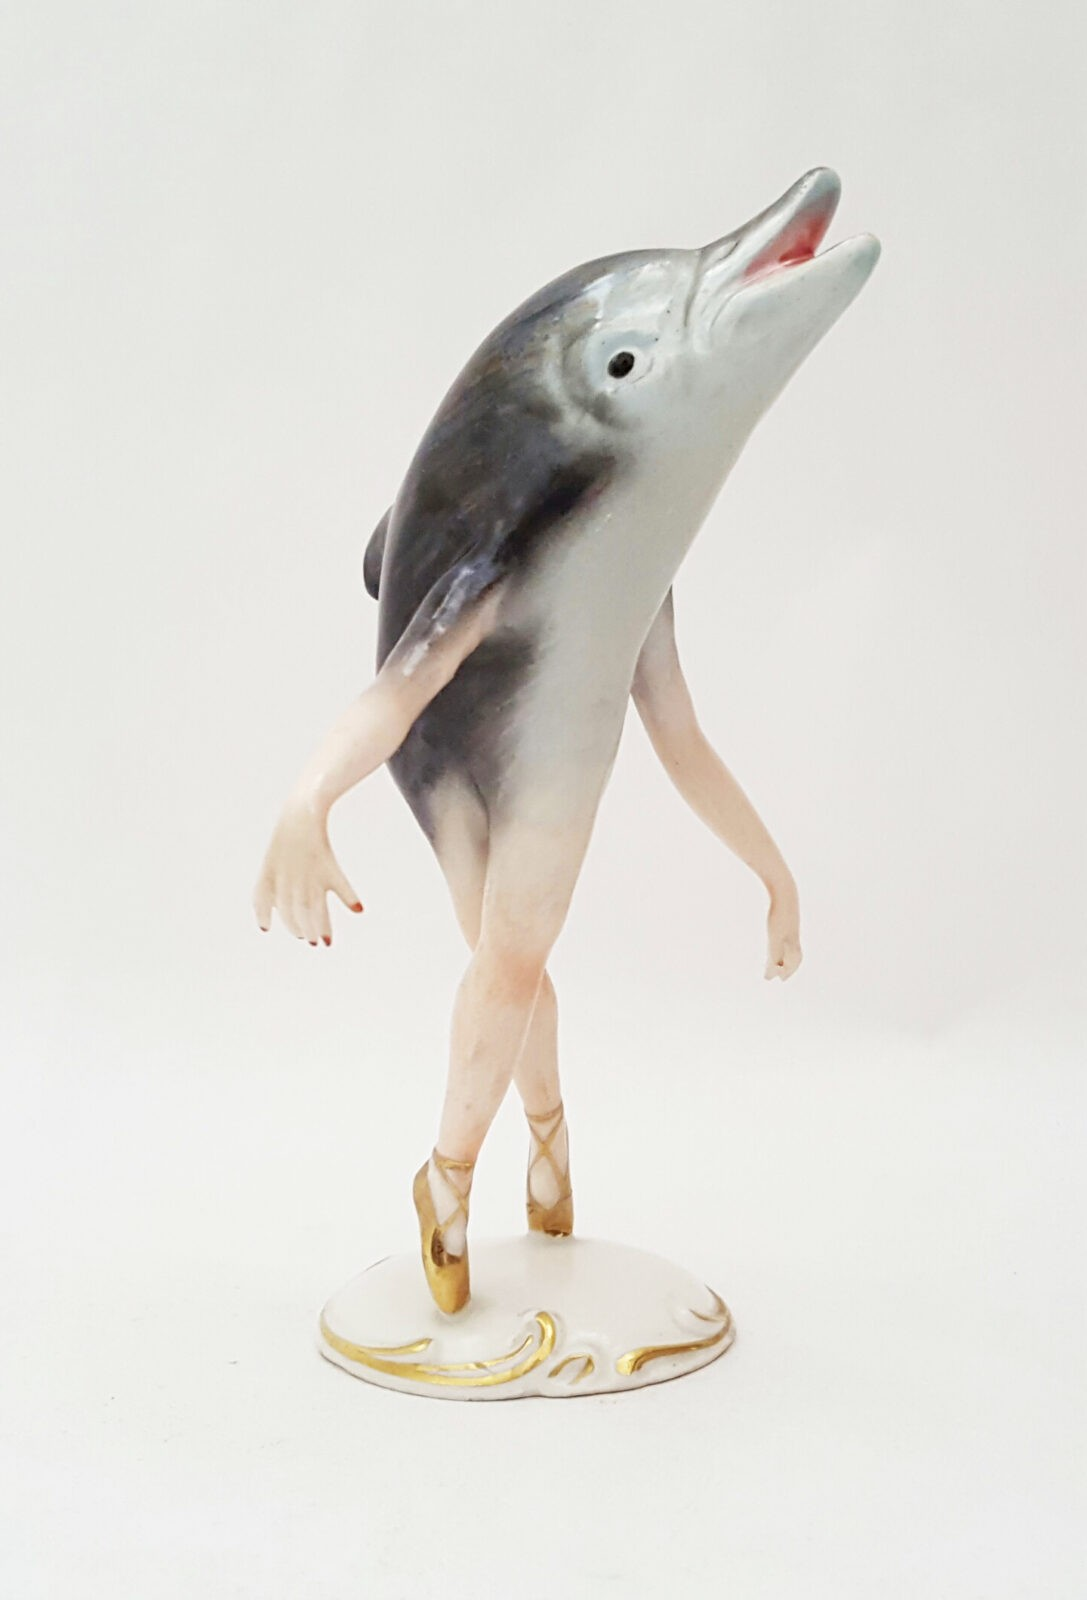 Comical Combinations of Ceramic Animals Form Surreal New Figurines